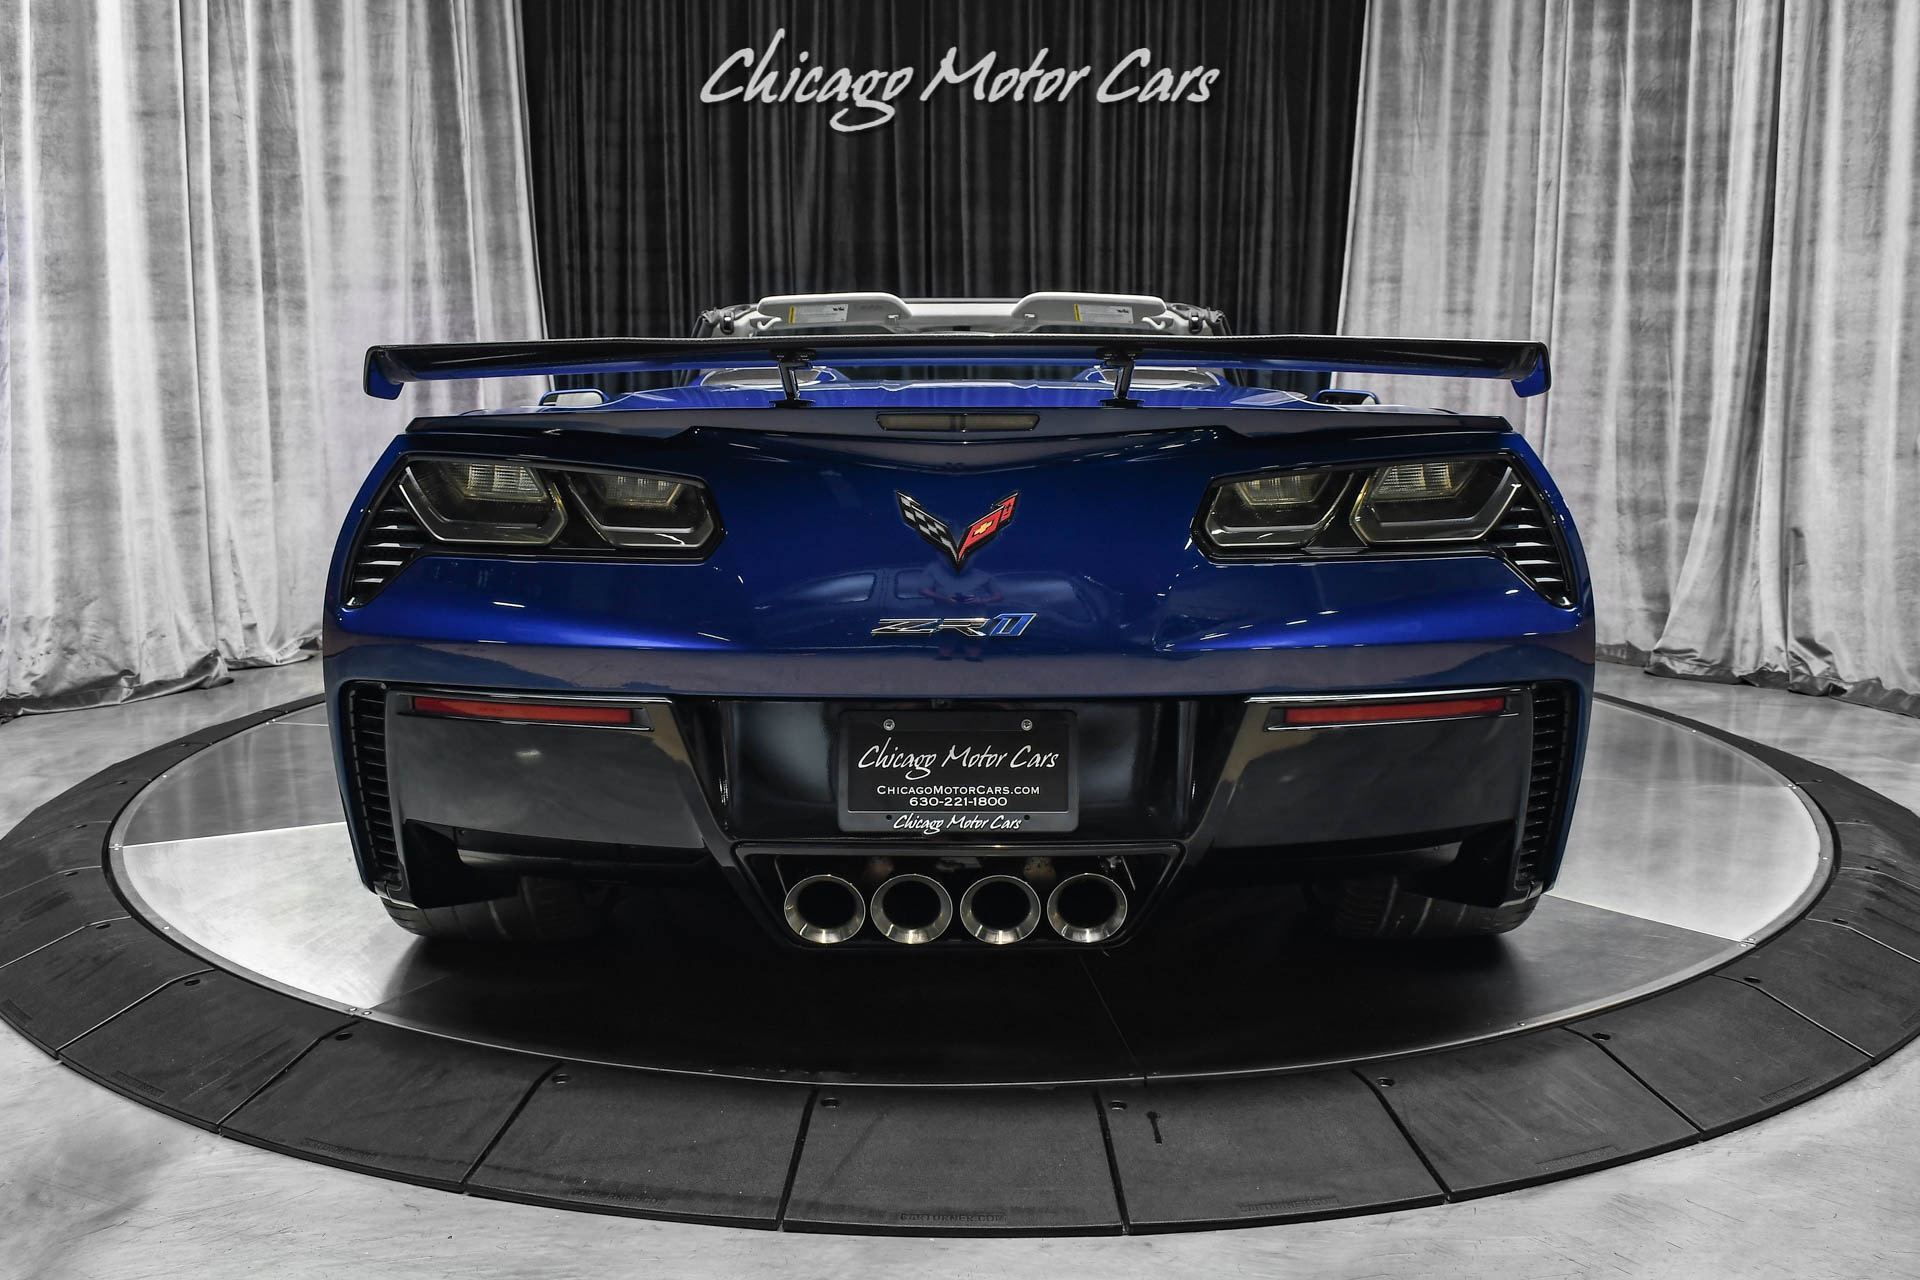 Used-2019-Chevrolet-Corvette-ZR1-3ZR-Convertible-Extremely-Rare-Color-Admiral-Blue-Metallic